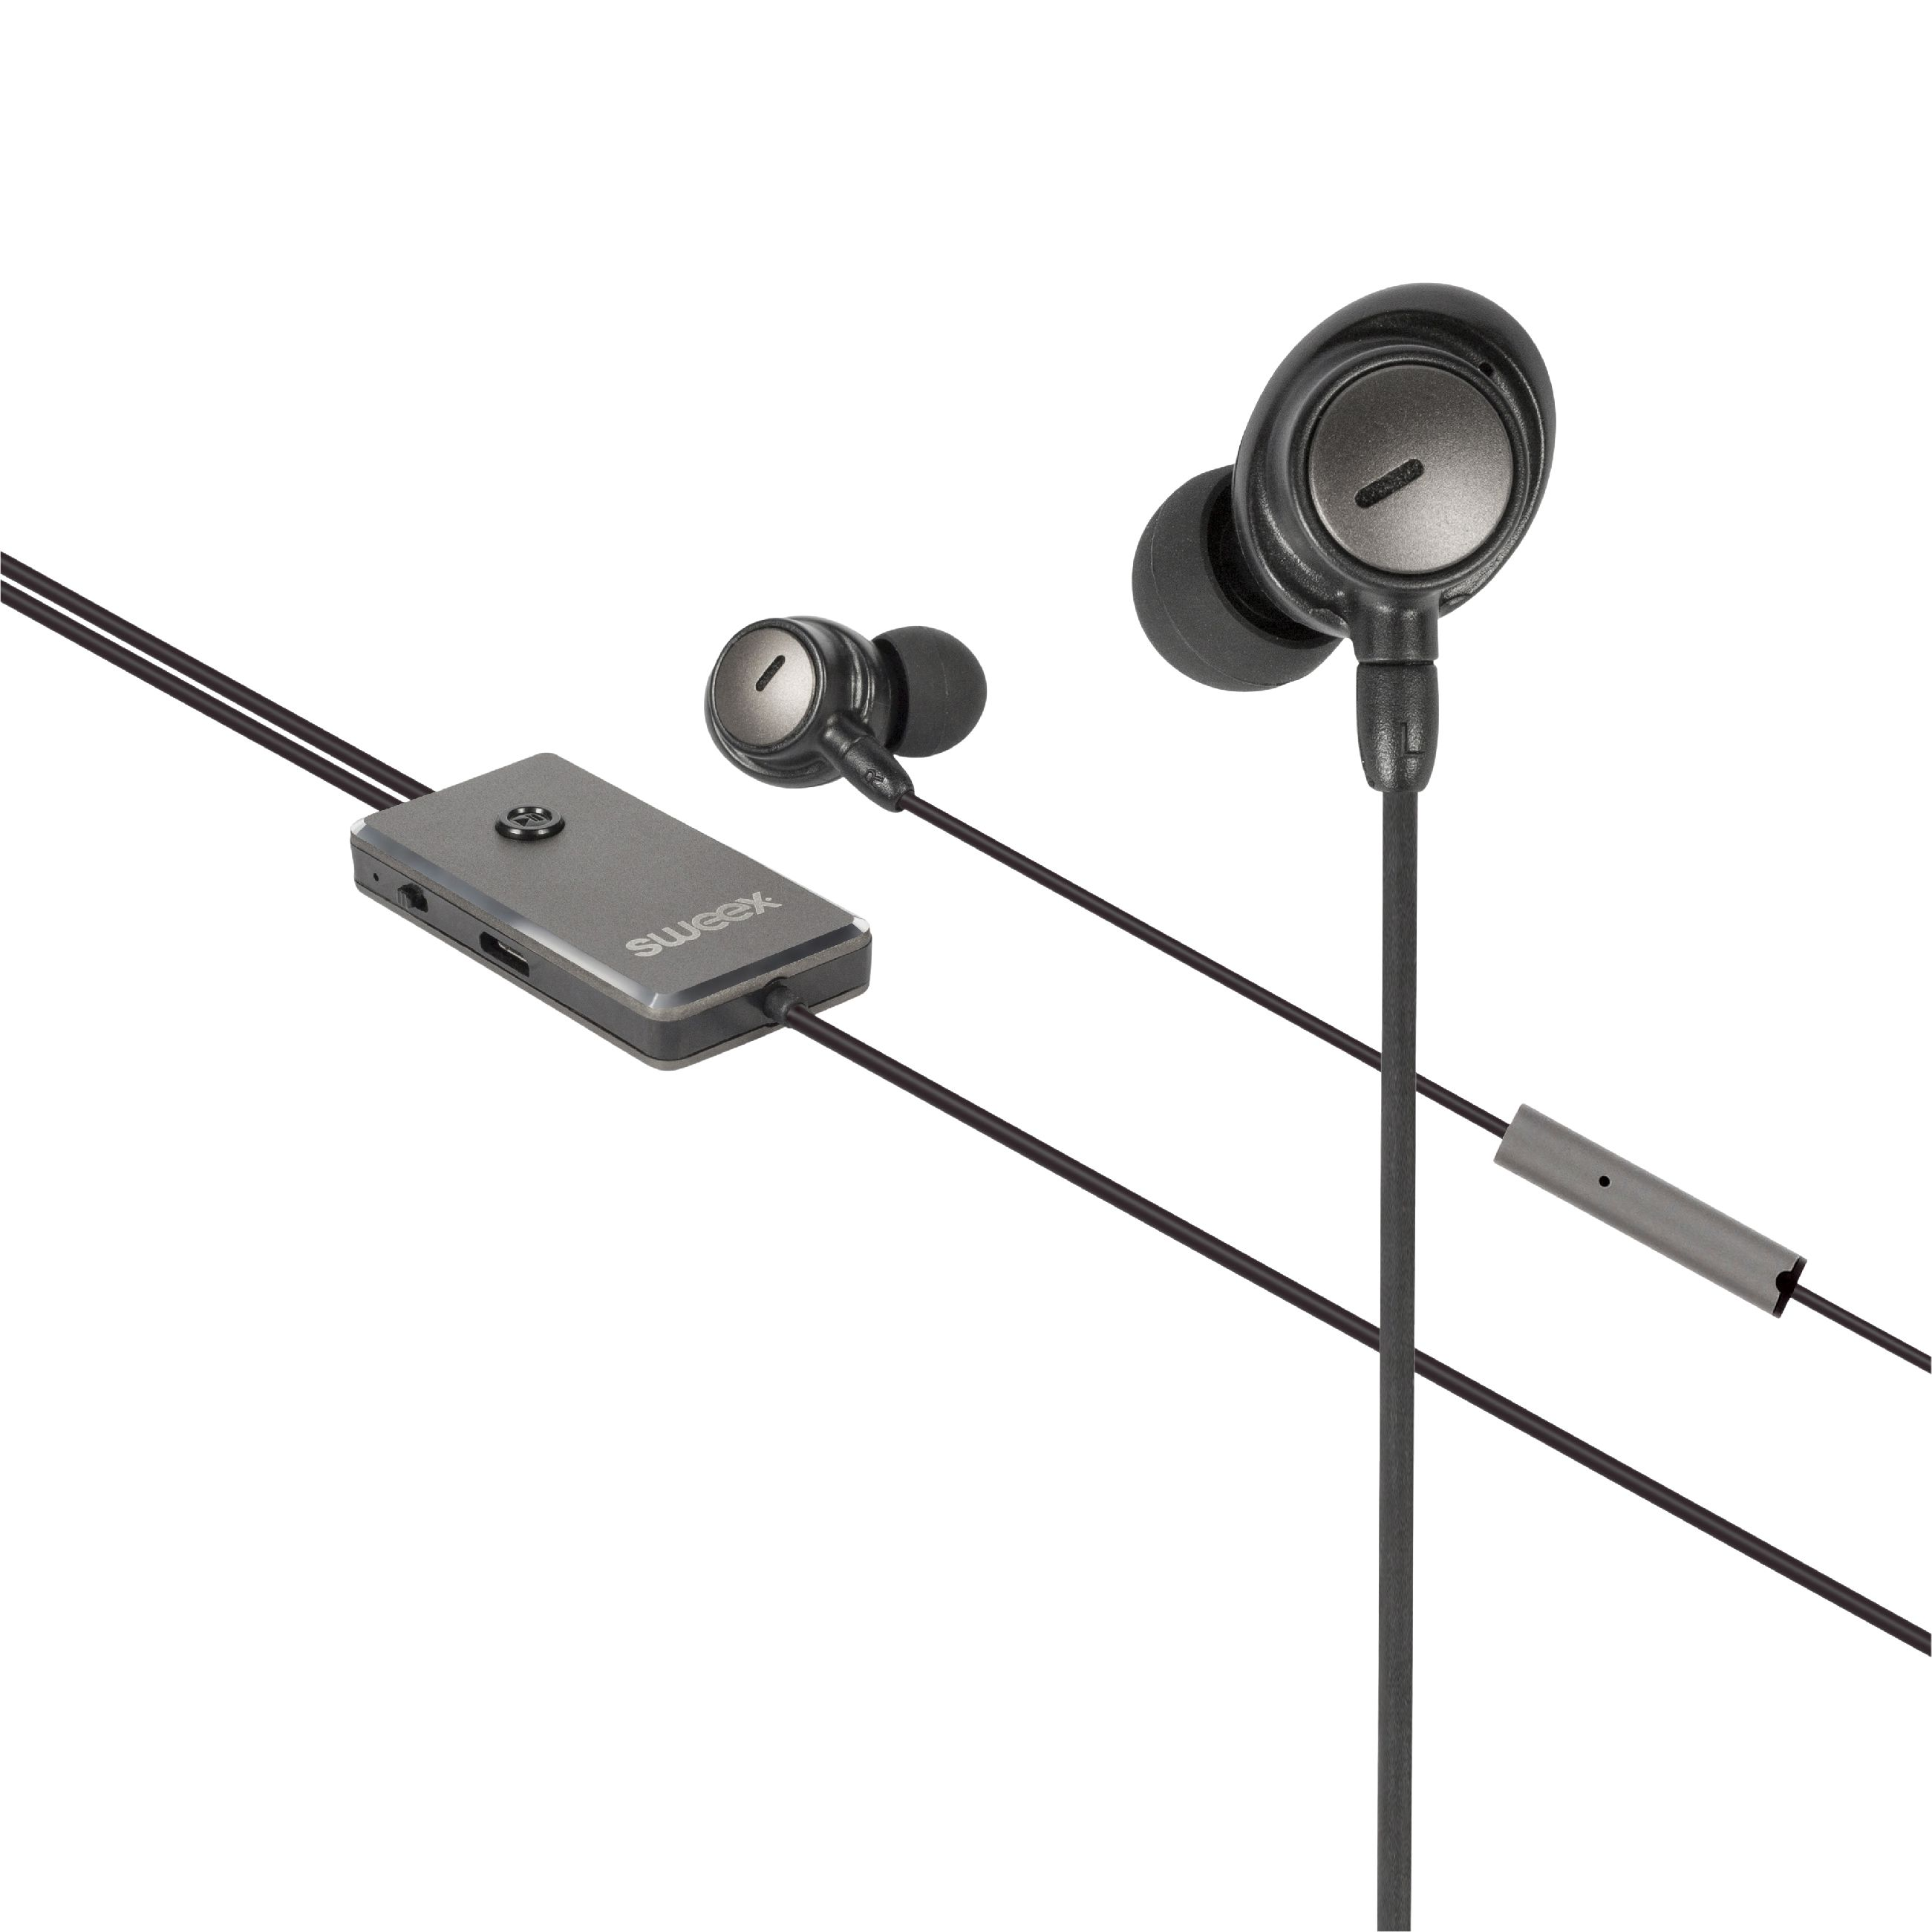 Image of   Headset ANC (Active Noise Cancelling) In-ear 3.5 mm Kabel Indbygget Mikrofon 1.2 m Antracit/Sort